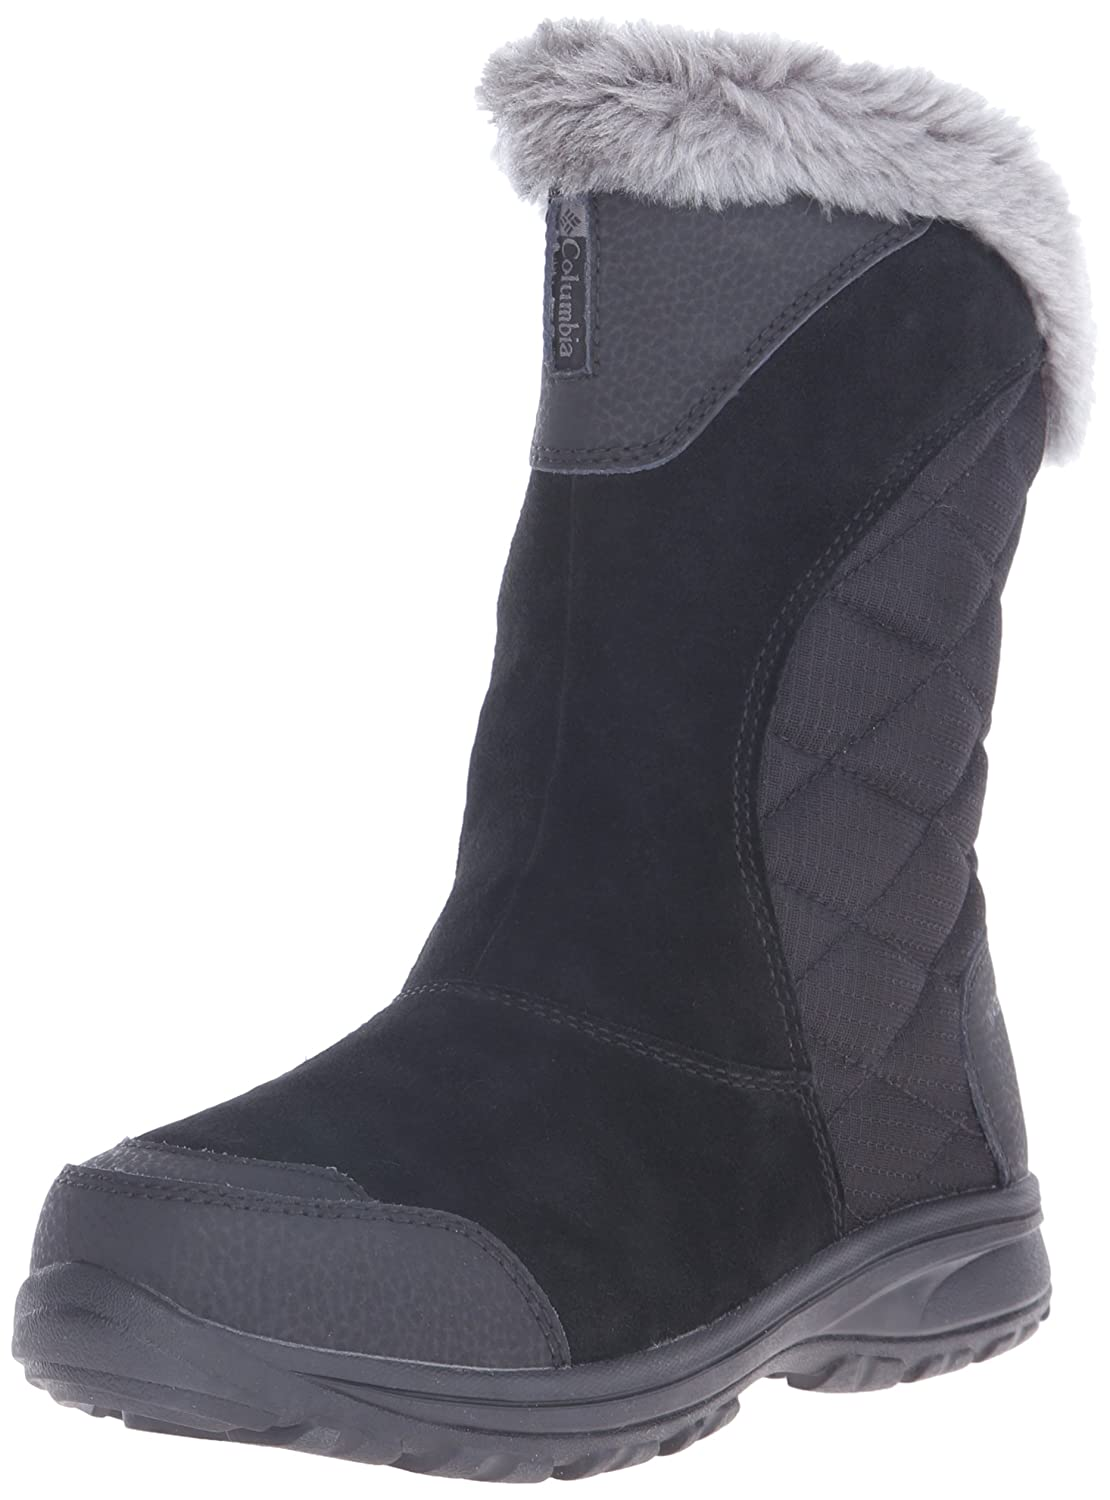 Columbia Women's Ice Maiden II Slip Winter Boot B00GW97HLI 11 B(M) US|Black, Shale